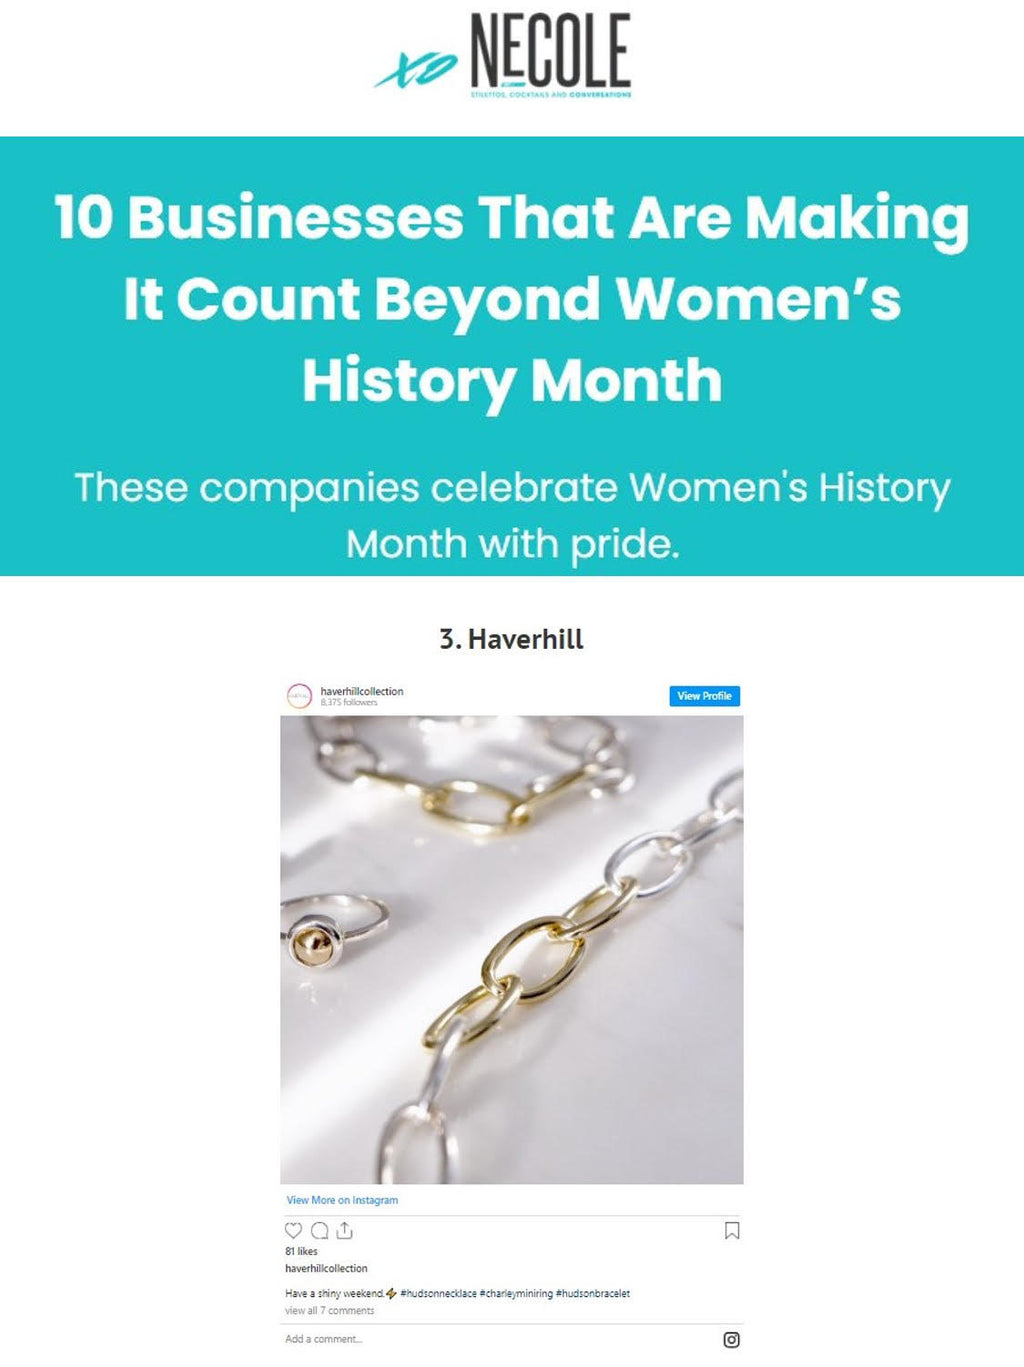 xoNecole: 10 Businesses That Are Making It Count Beyond Women's History Month